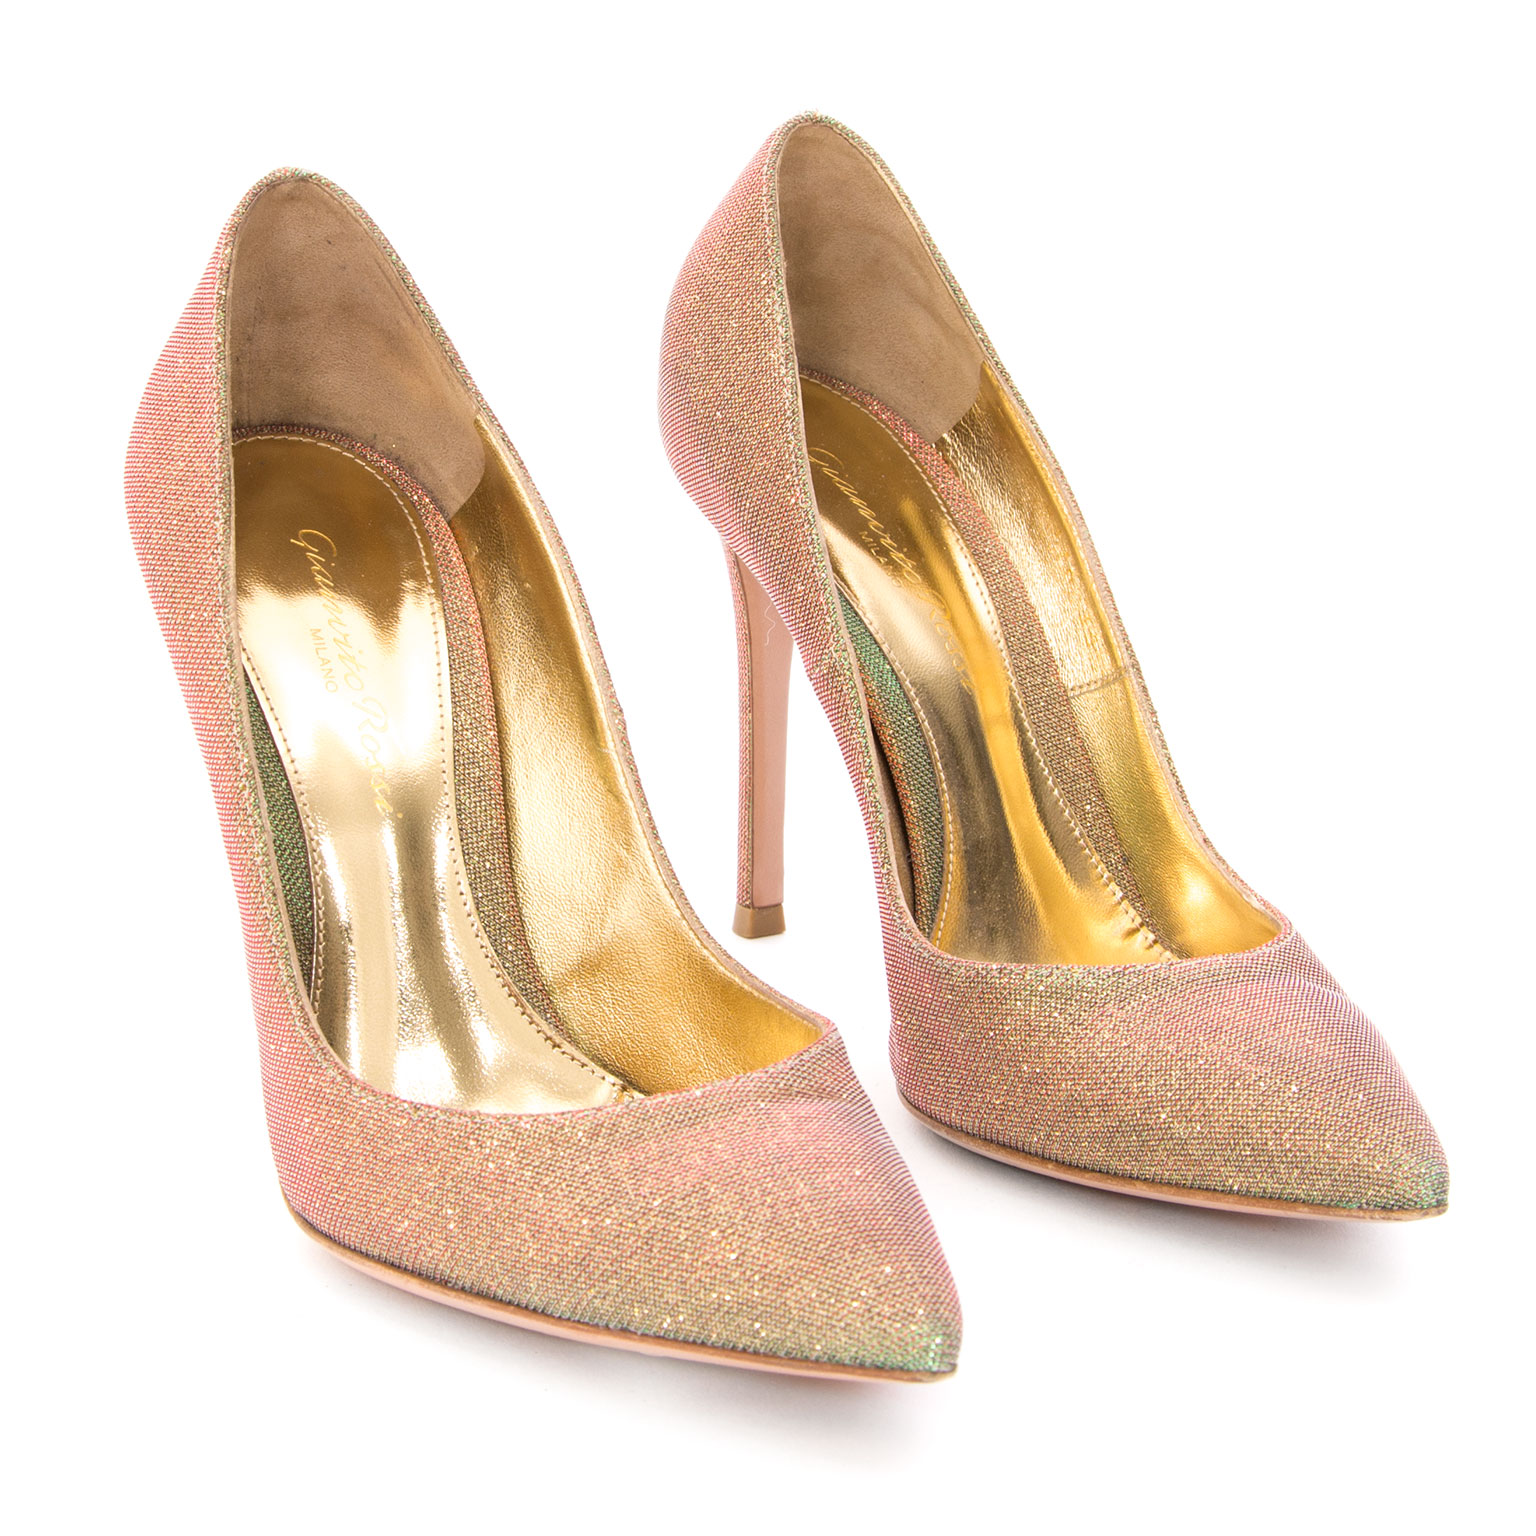 Preowned Gianvitto Rossi Sparkle Iridescent Pumps shop sell resell designer vintage worldwide shipping